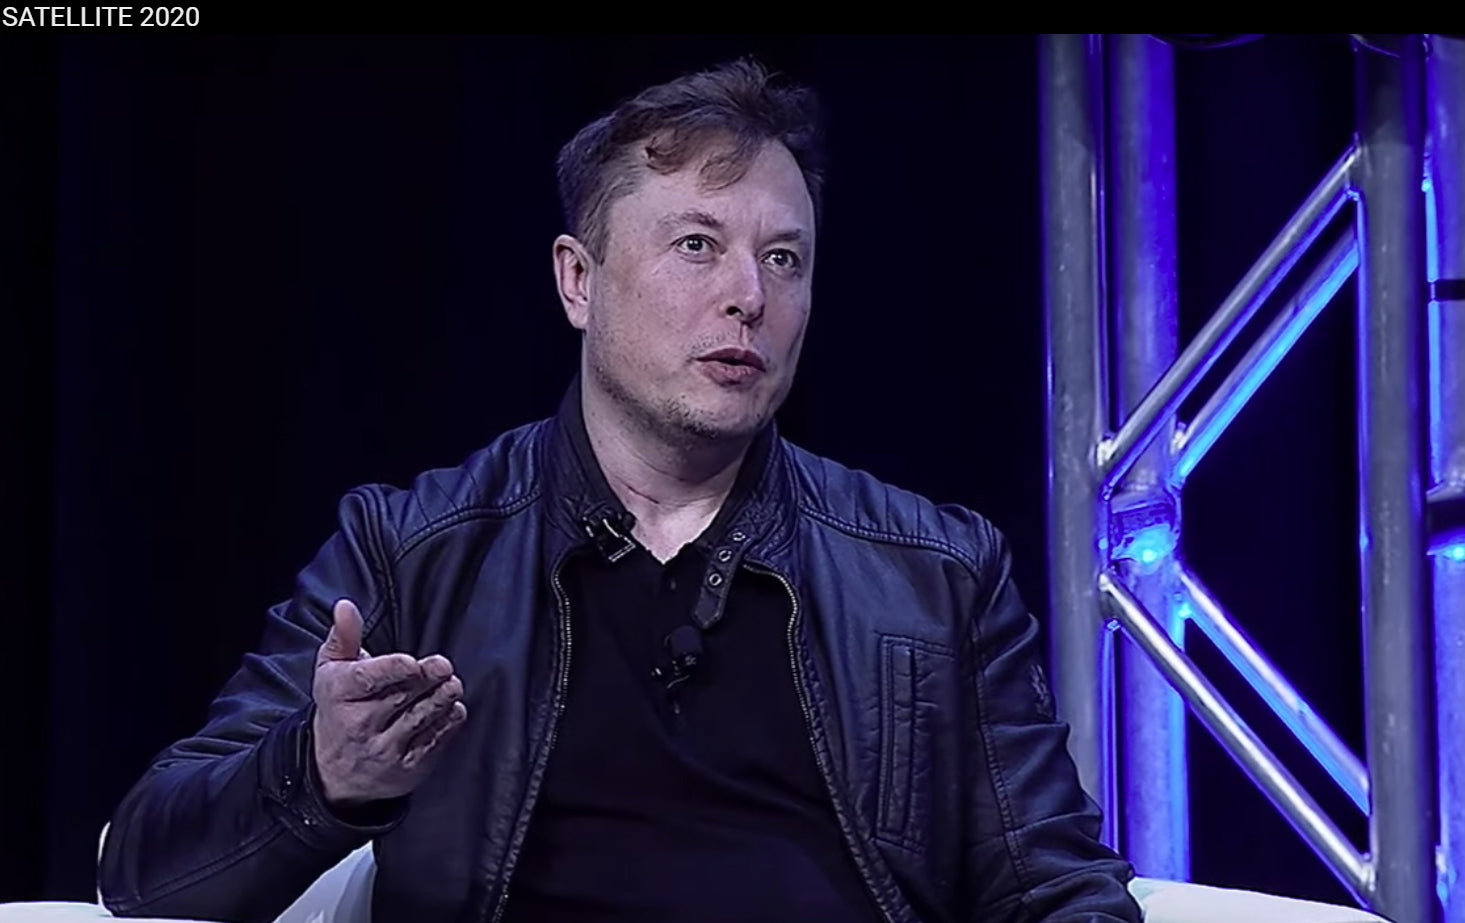 Elon Musk attends the Satellite 2020 conference, says 'you don't need college to learn stuff'  [Video]